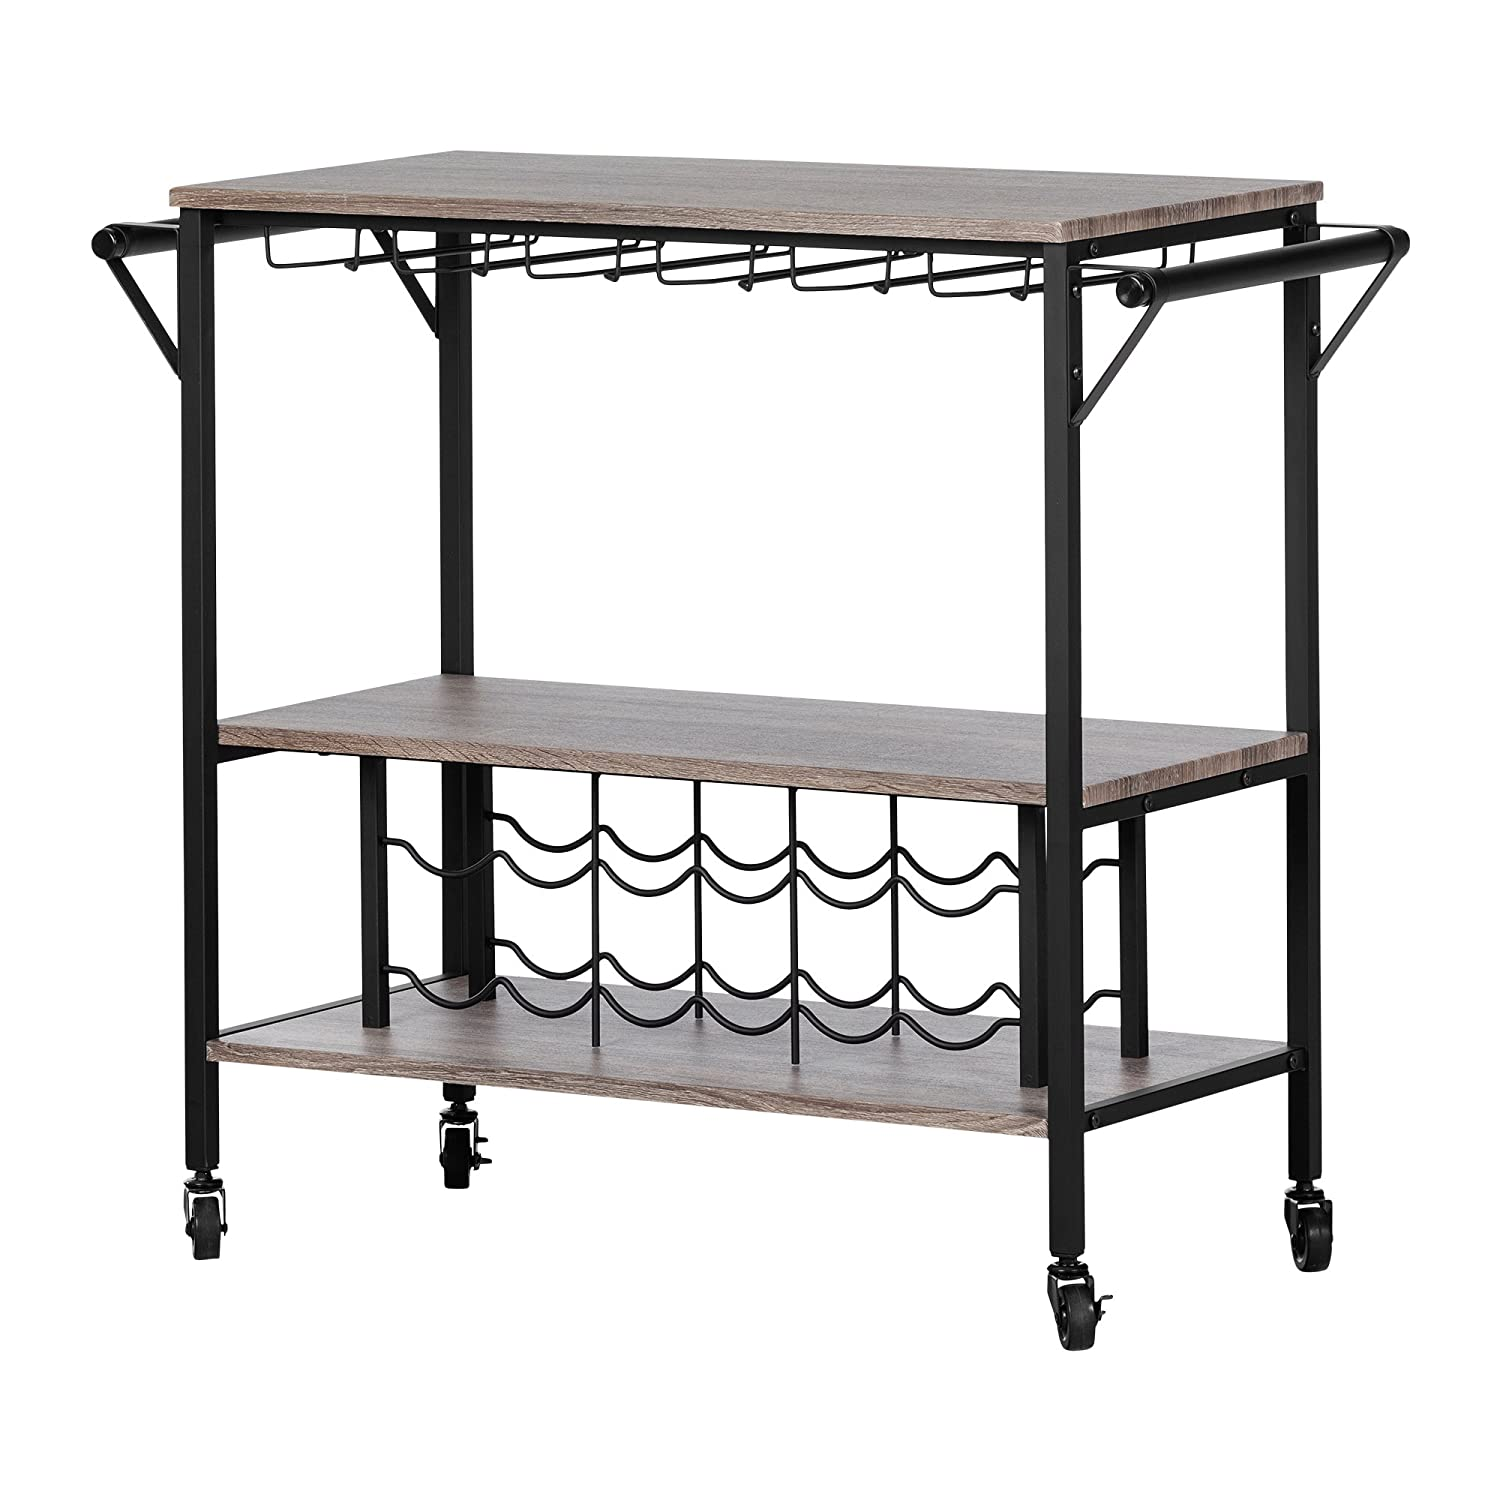 South Shore 12069 Munich Bar Cart with Wine Rack, Weathered Oak and Matte Black South Shore (SOUCS)